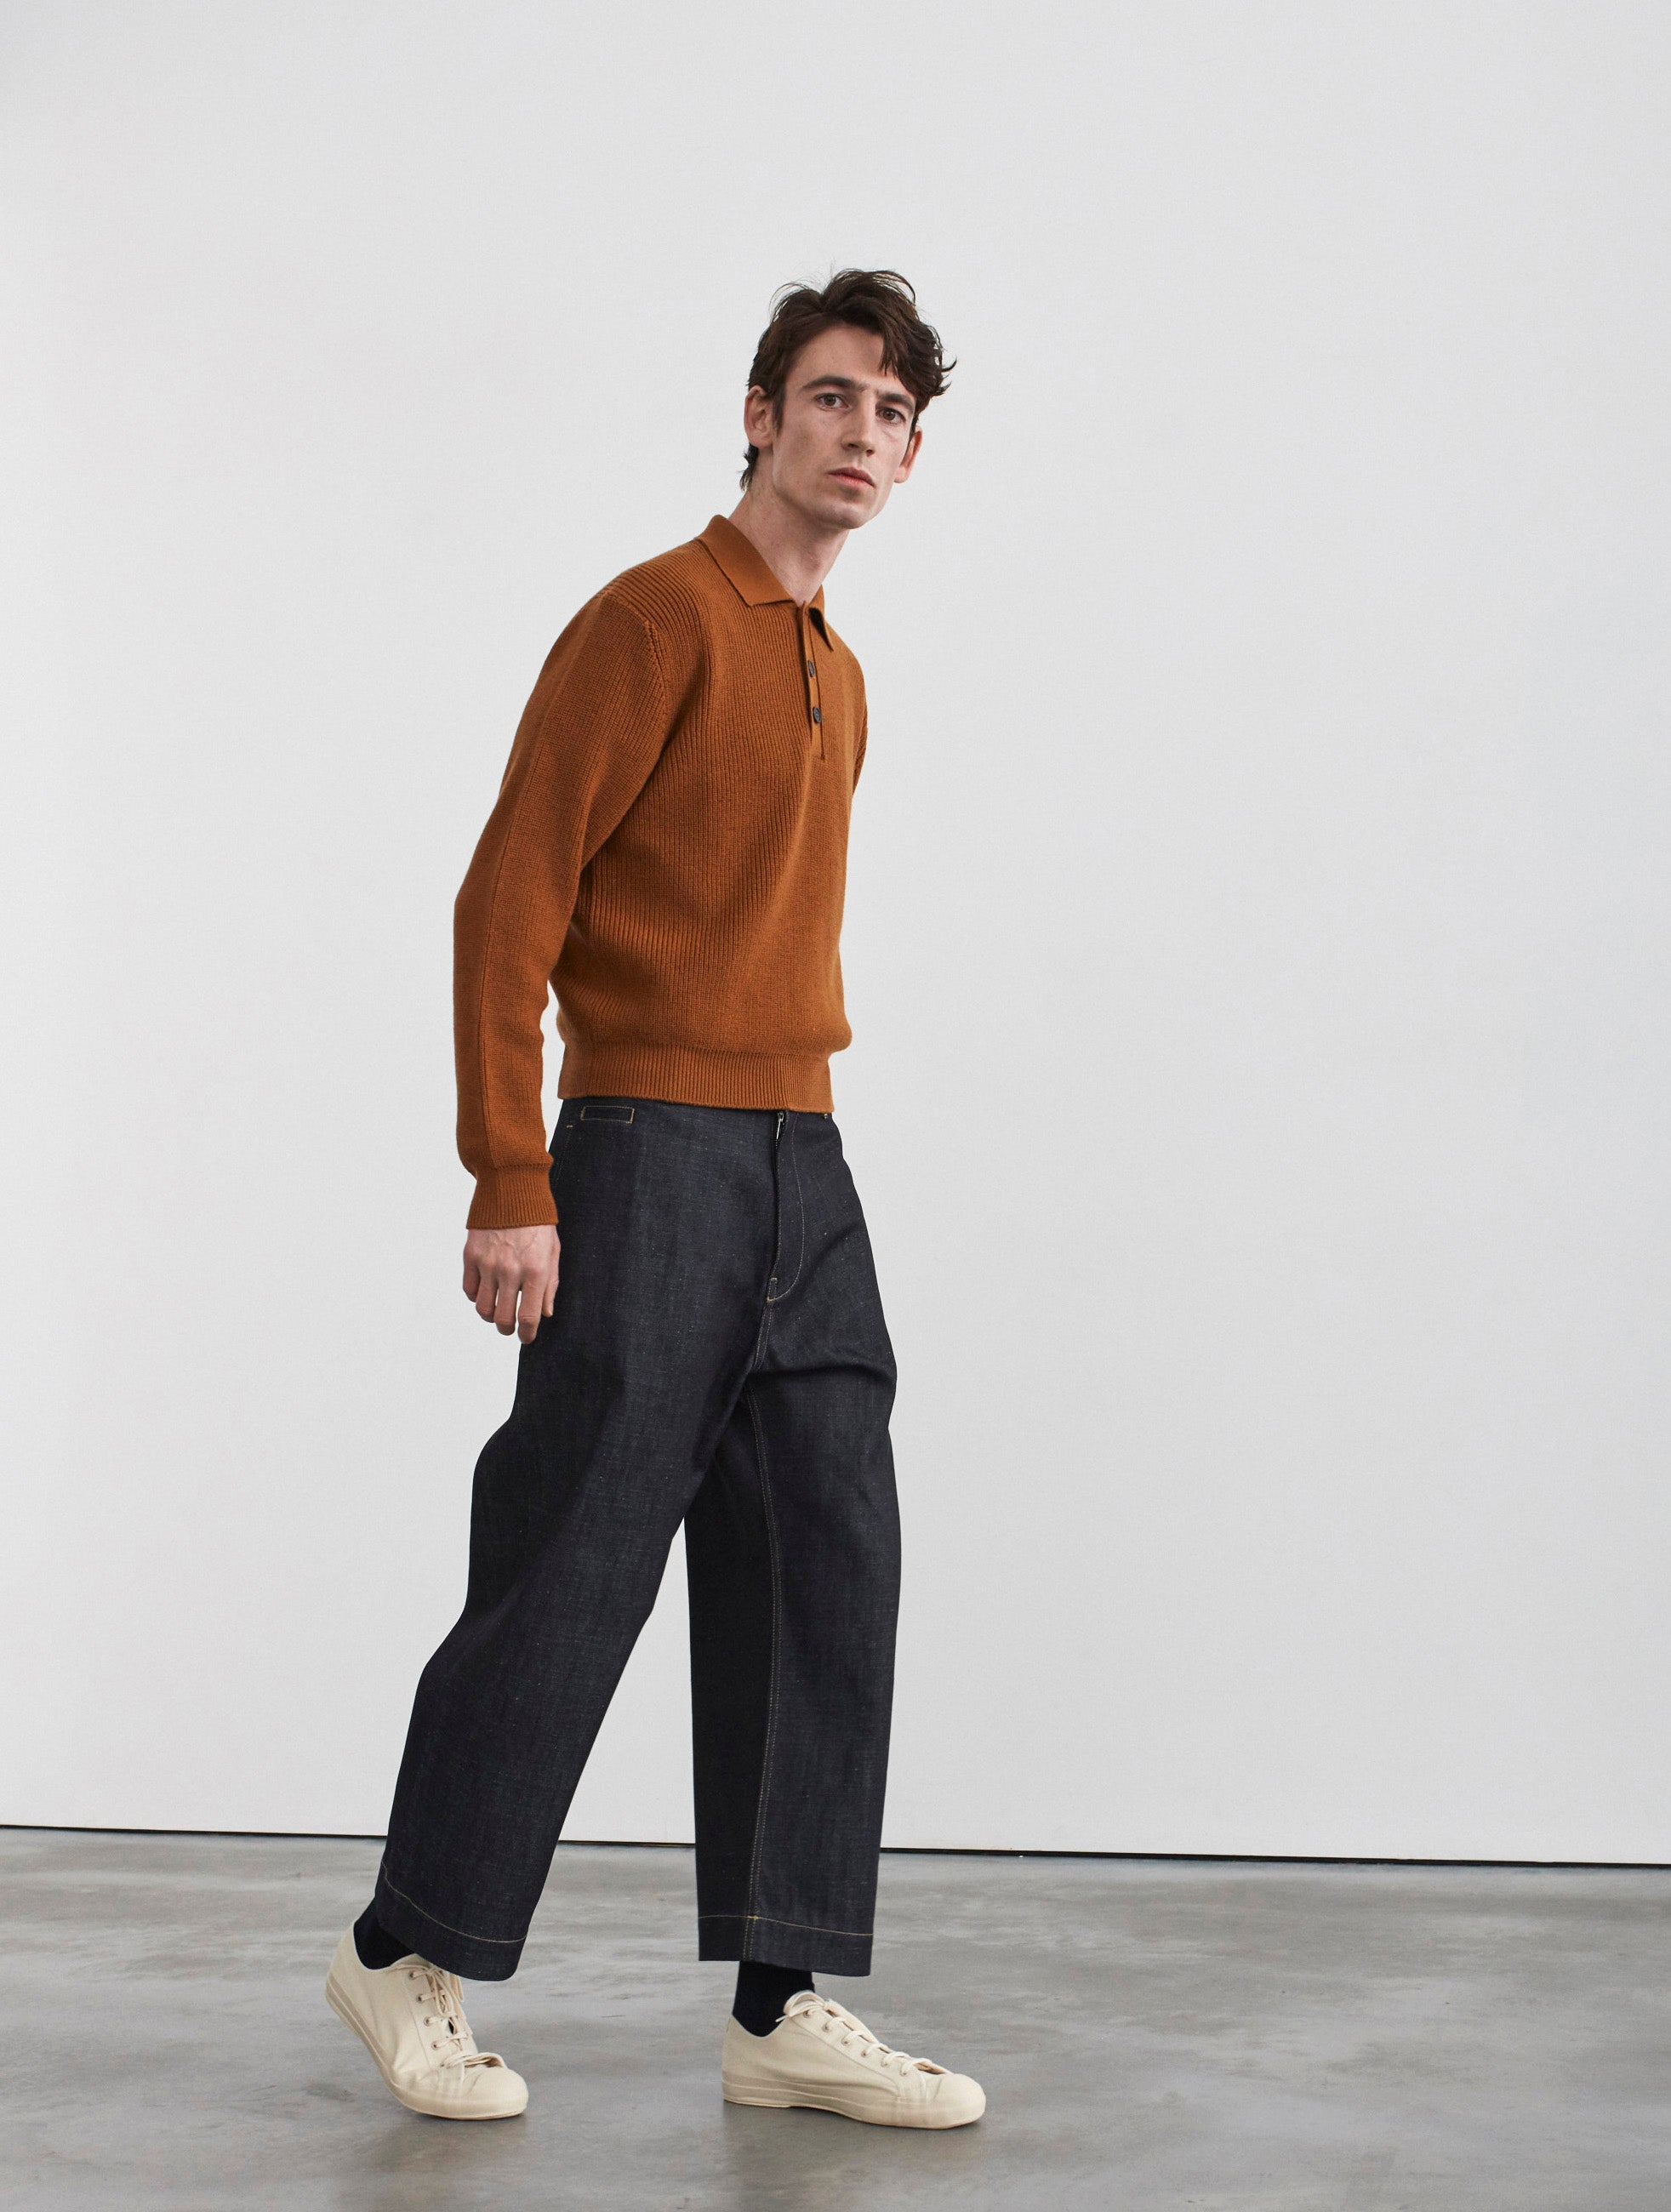 Pick a Pant – The Studio Nicholson Trouser Inventory